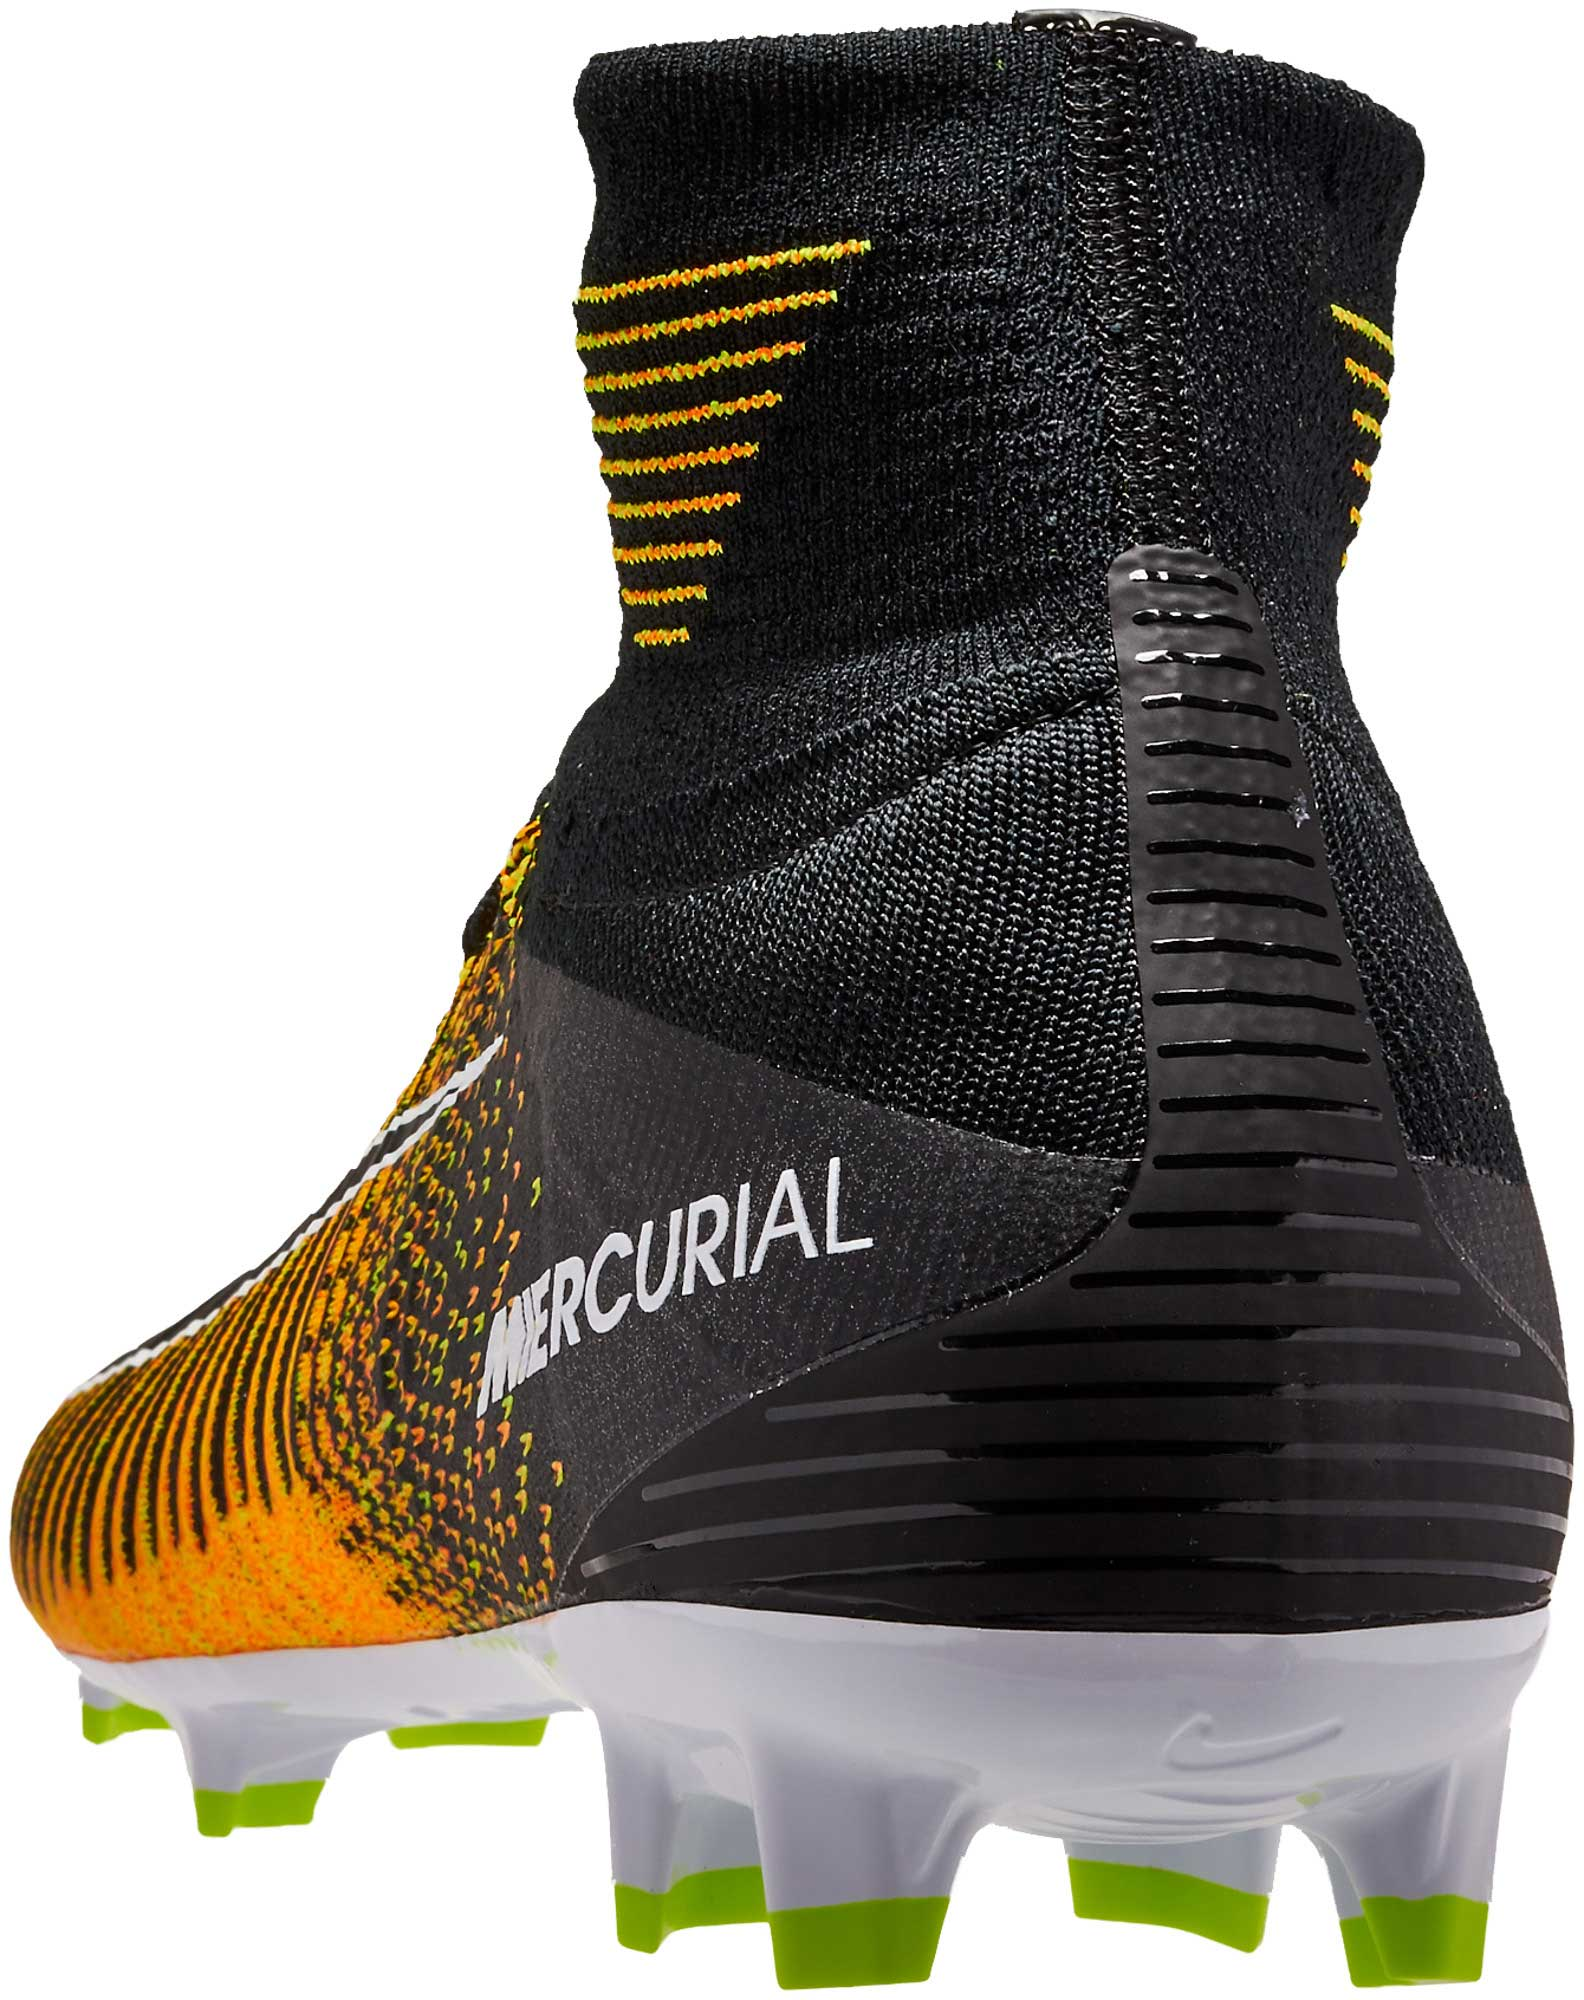 brand new 462f9 f7aa5 Nike Kids Mercurial Superfly V FG - Youth Soccer Cleats